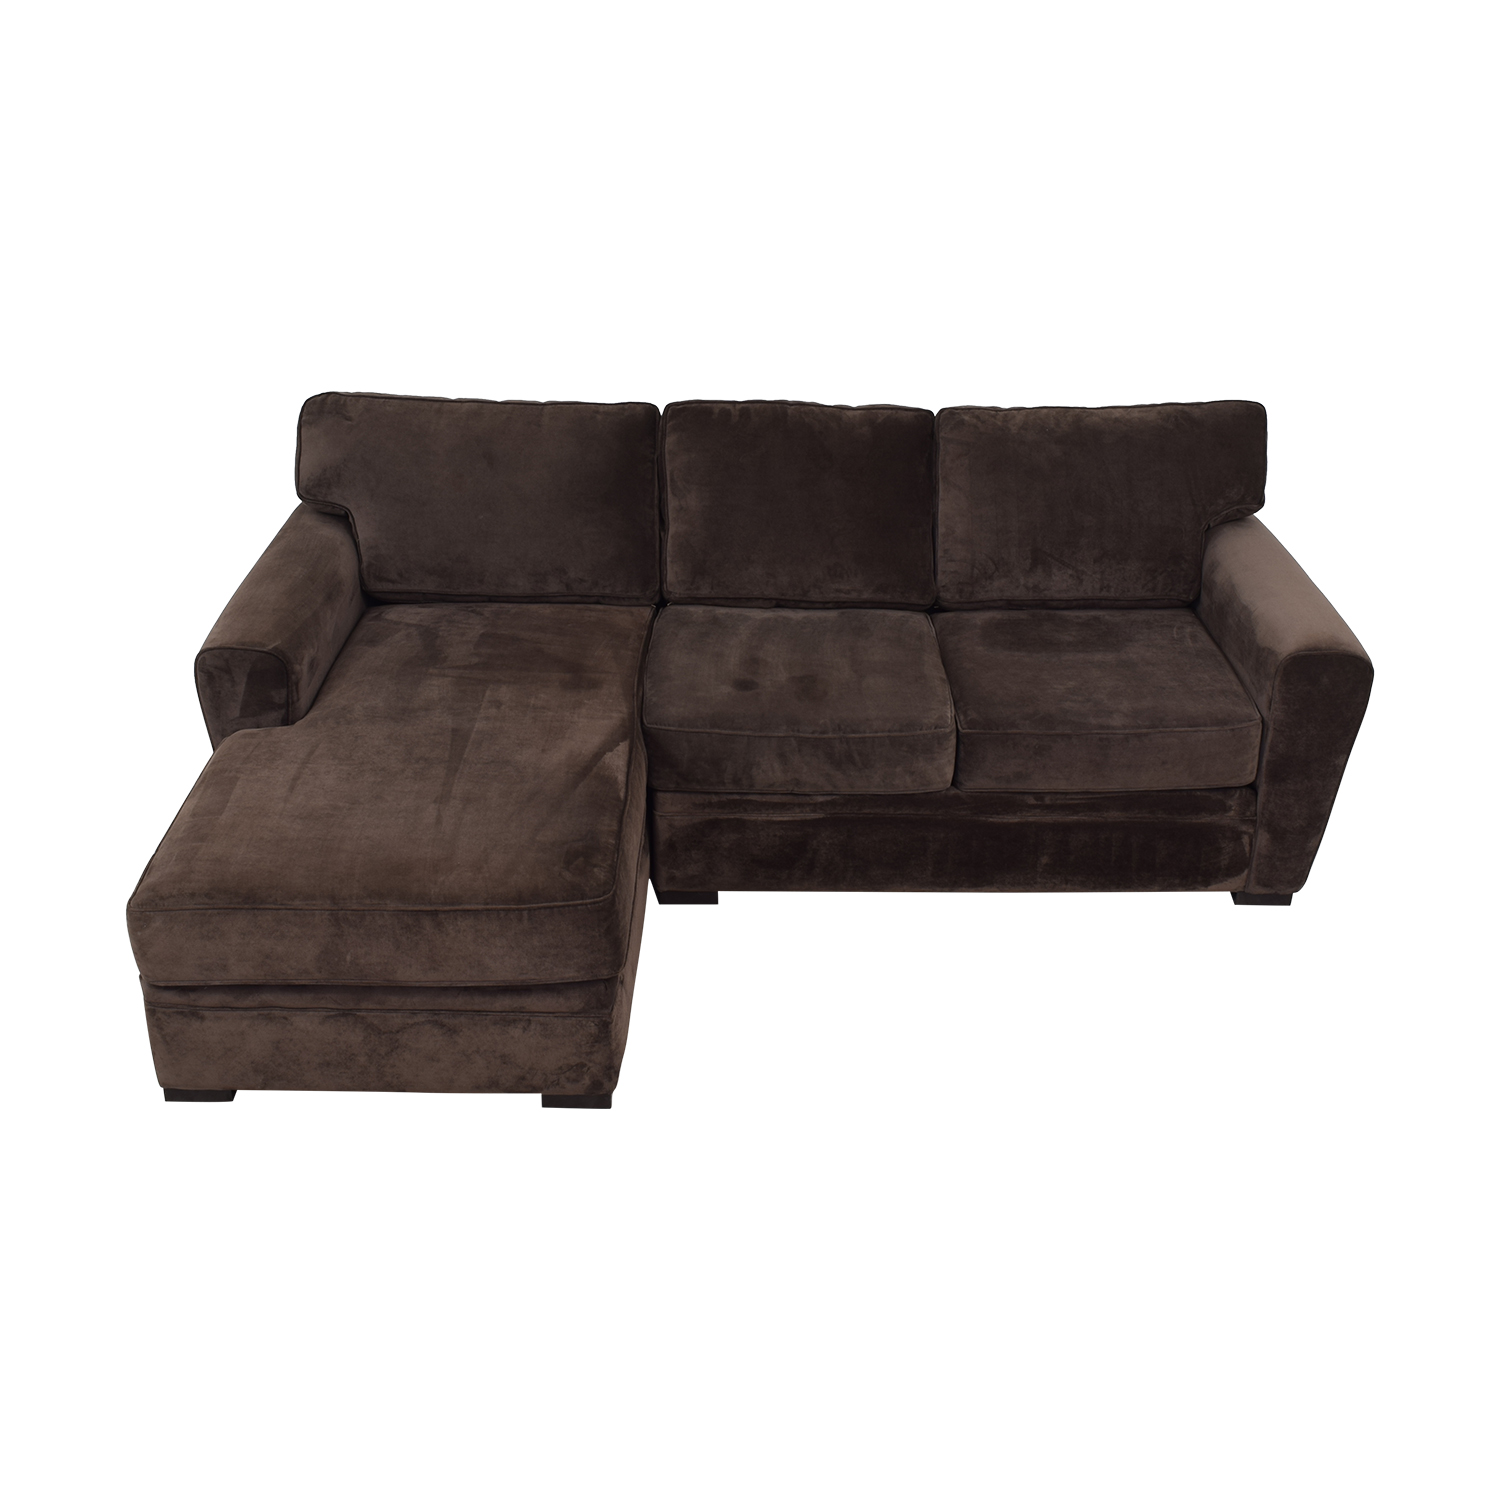 Raymour & Flanigan Raymour & Flanigan Artemis II Brown Microfiber Chaise Sectional